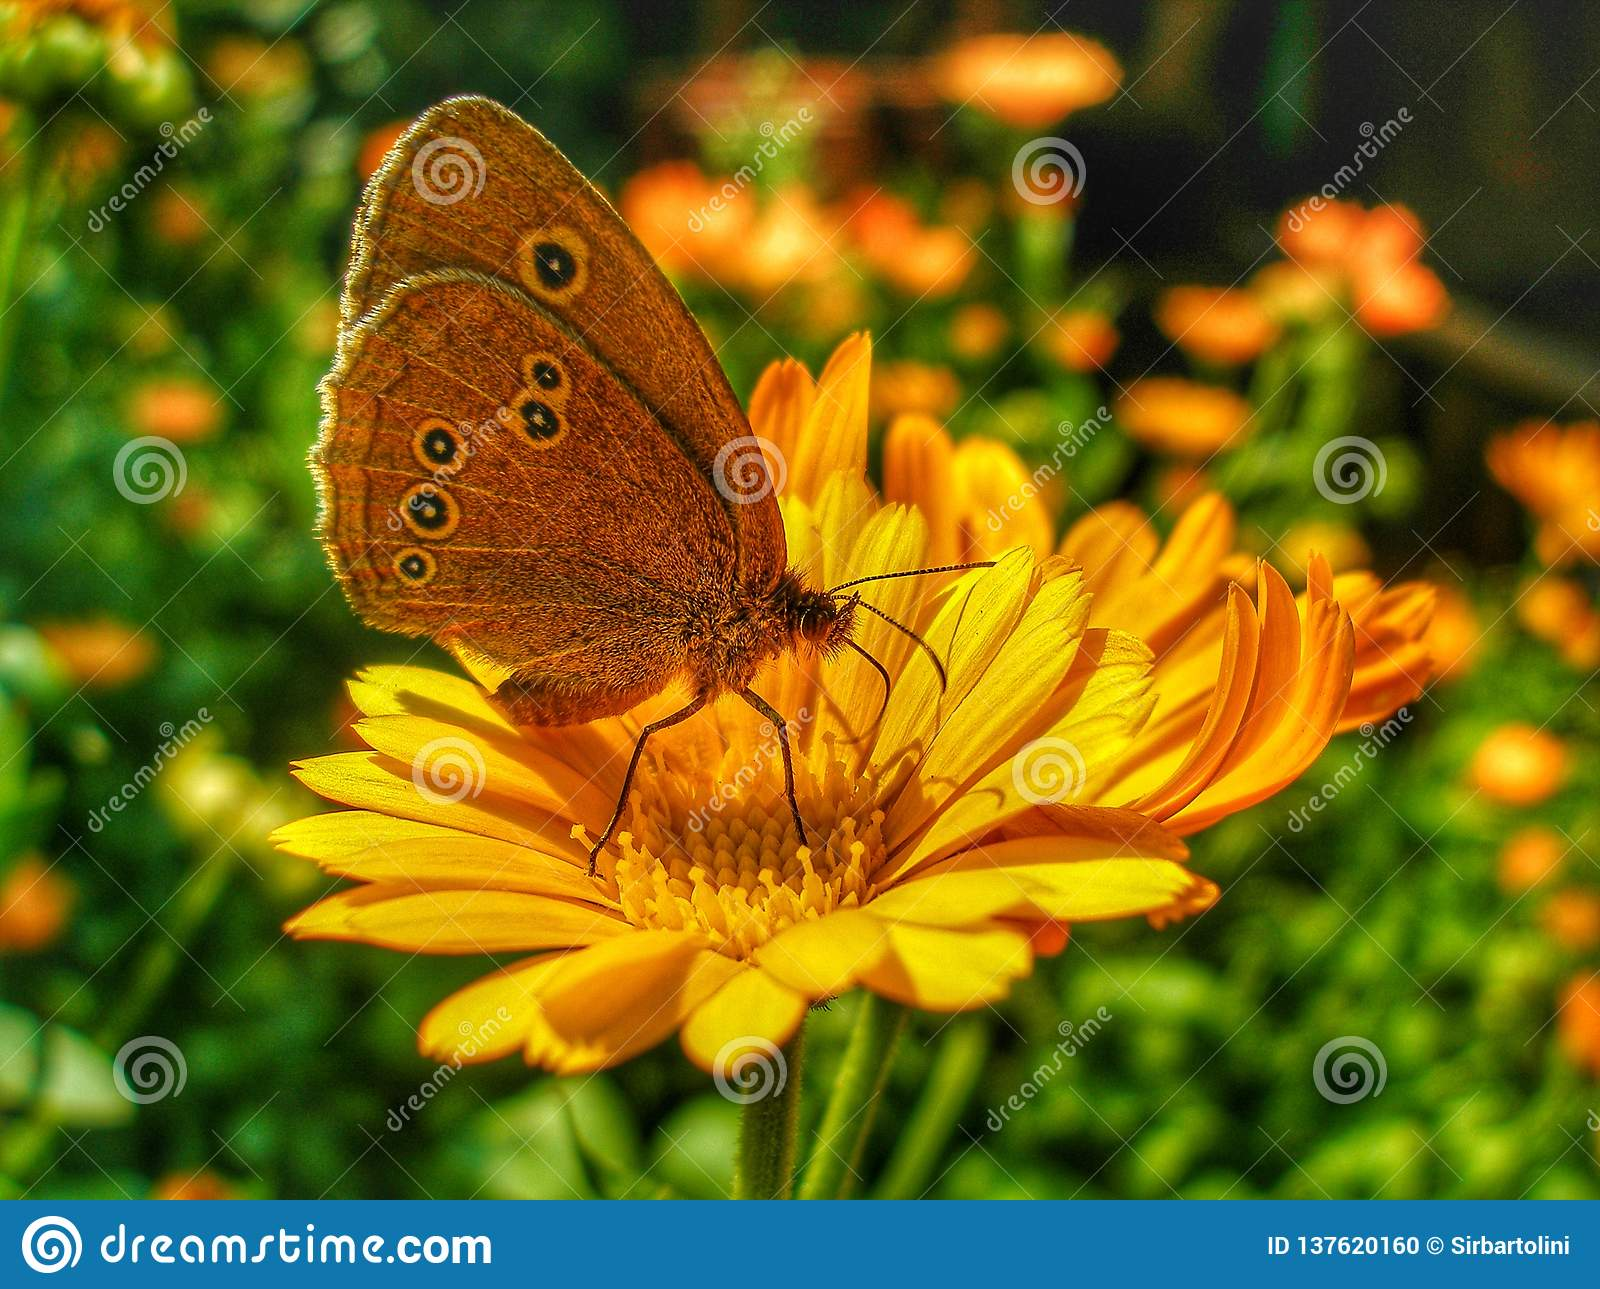 Ringlet butterfly sitting on Marigold flower.